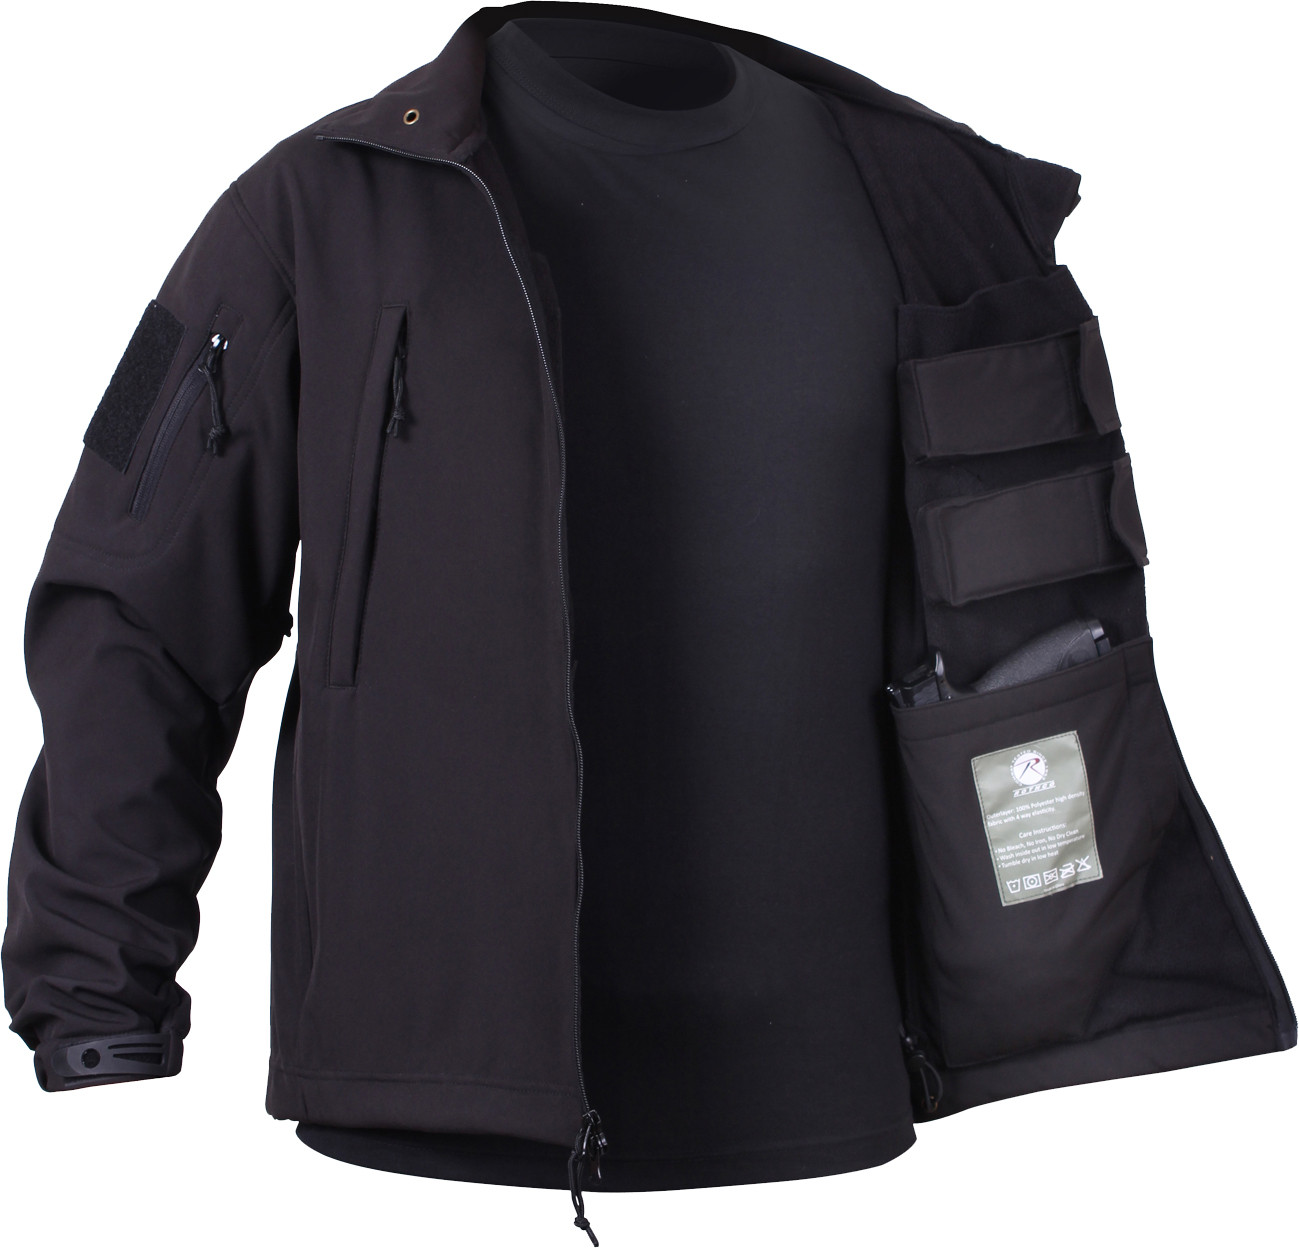 Black Military Ambidextrous Concealed Carry Soft Shell Tactical Jacket f95a9da3f7e